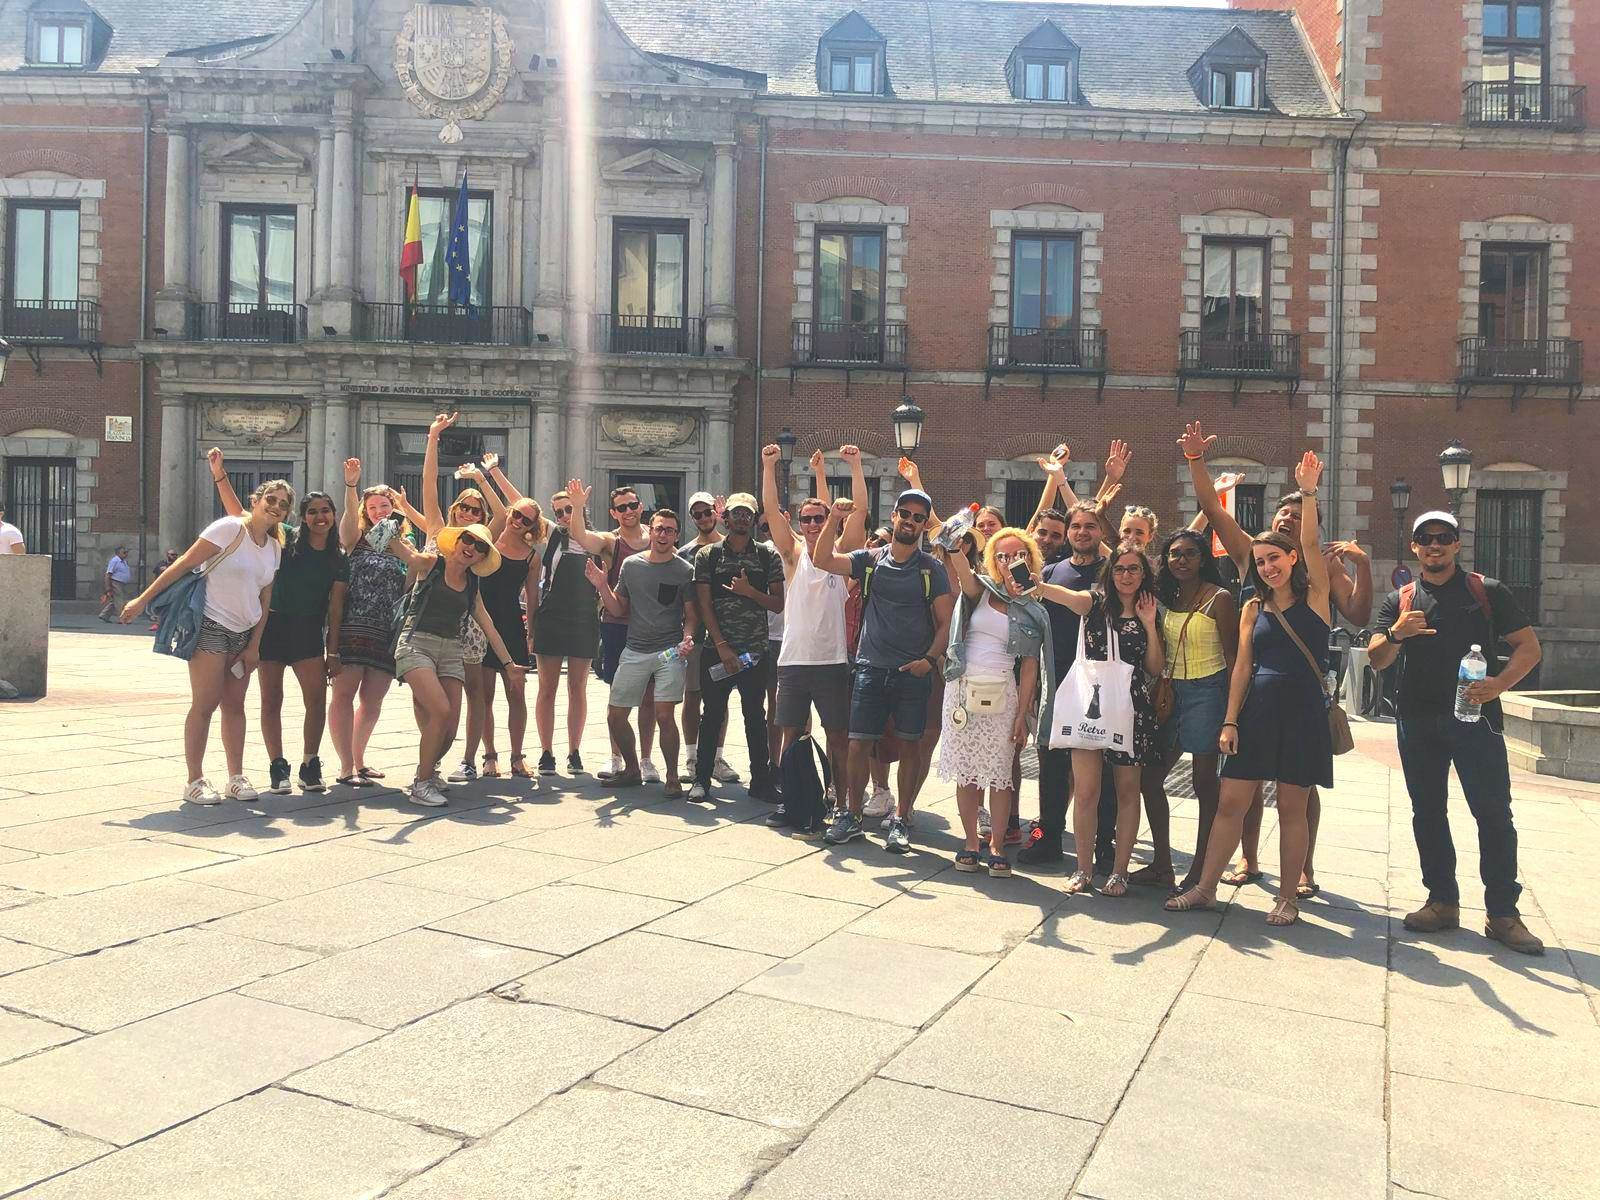 Madrid Walking Tour 'The Other Side of Madrid'